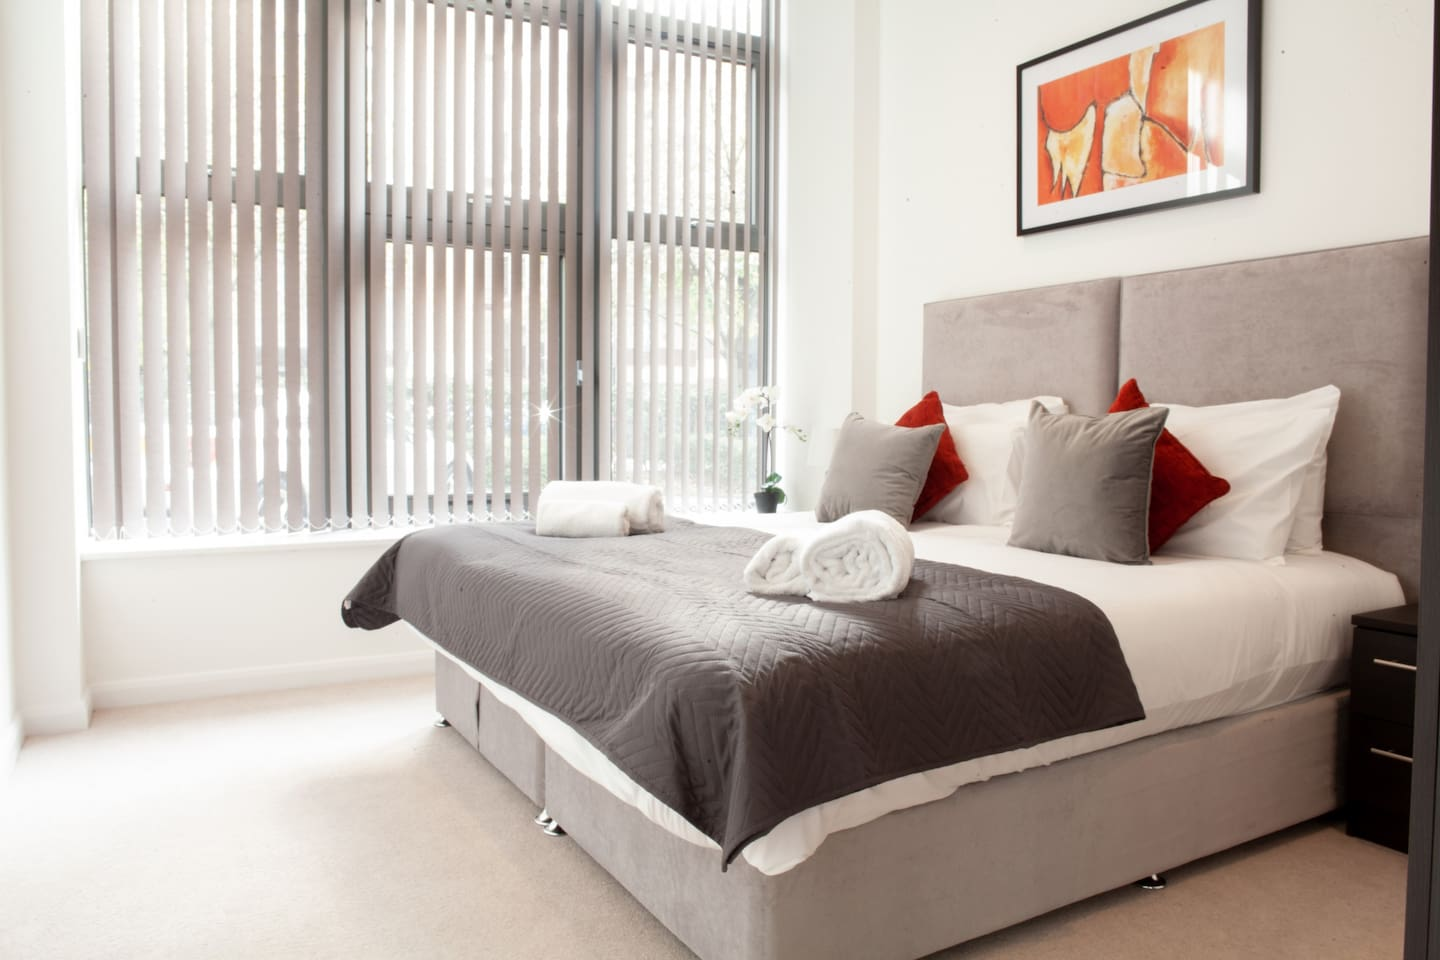 Your spacious bedroom comes with hotel quality linen and towels. Extra decorative cushions for your comfort, bedside table with a bed lamp.